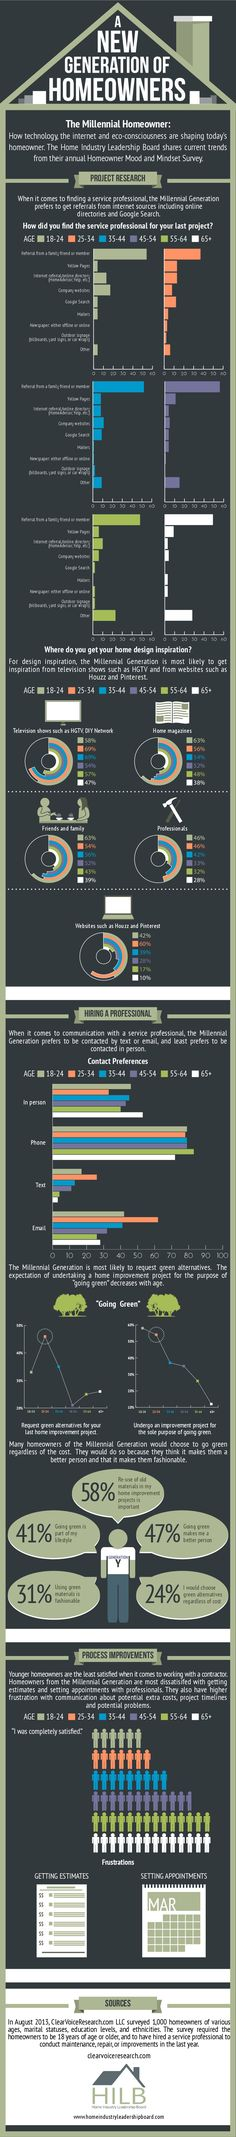 A New Generation Of Homeowners   #Infographic #GenY #Homeowners